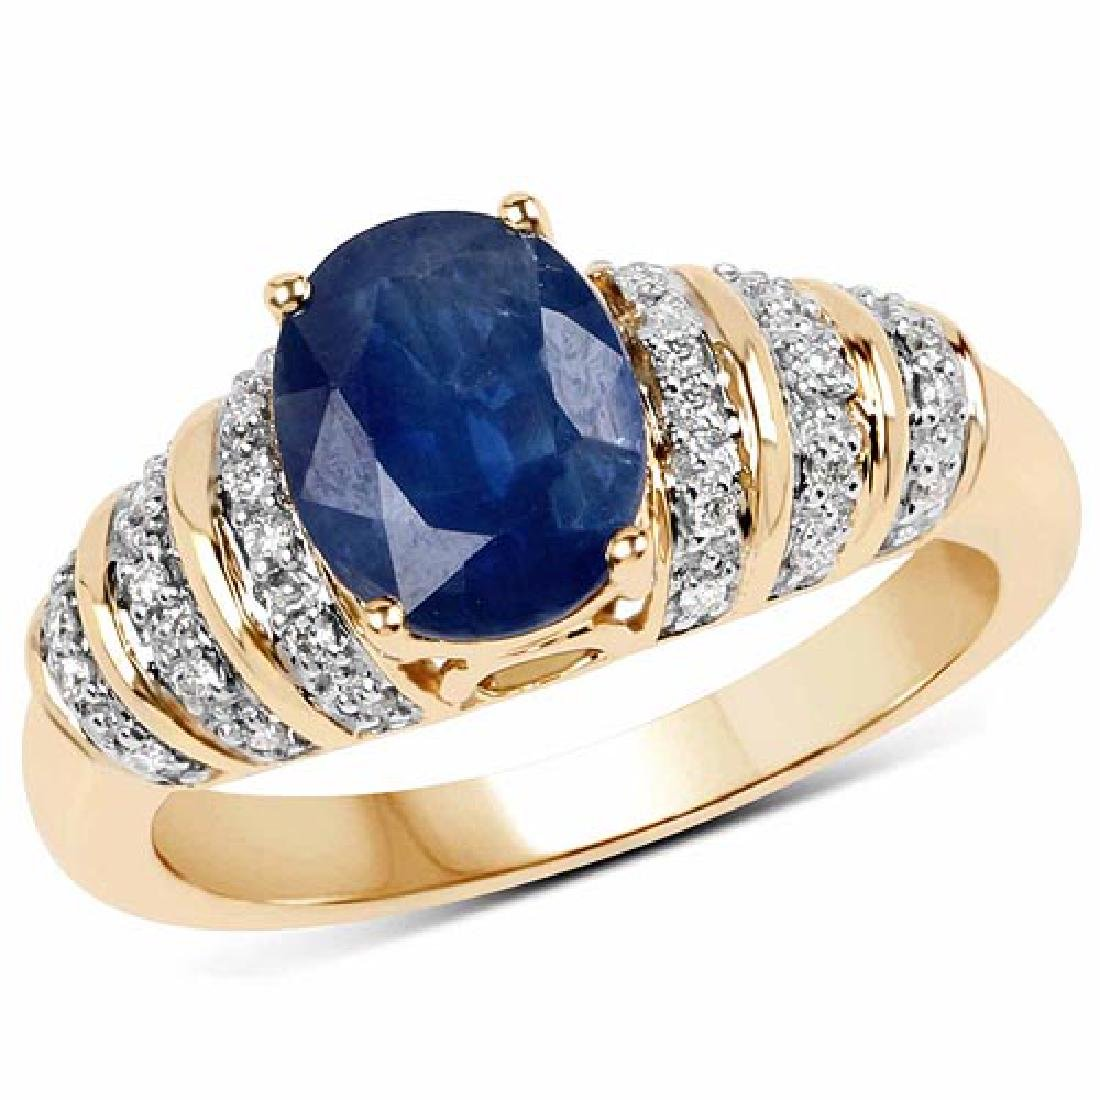 2.11 Carat Genuine Blue Sapphire and White Diamond 14K